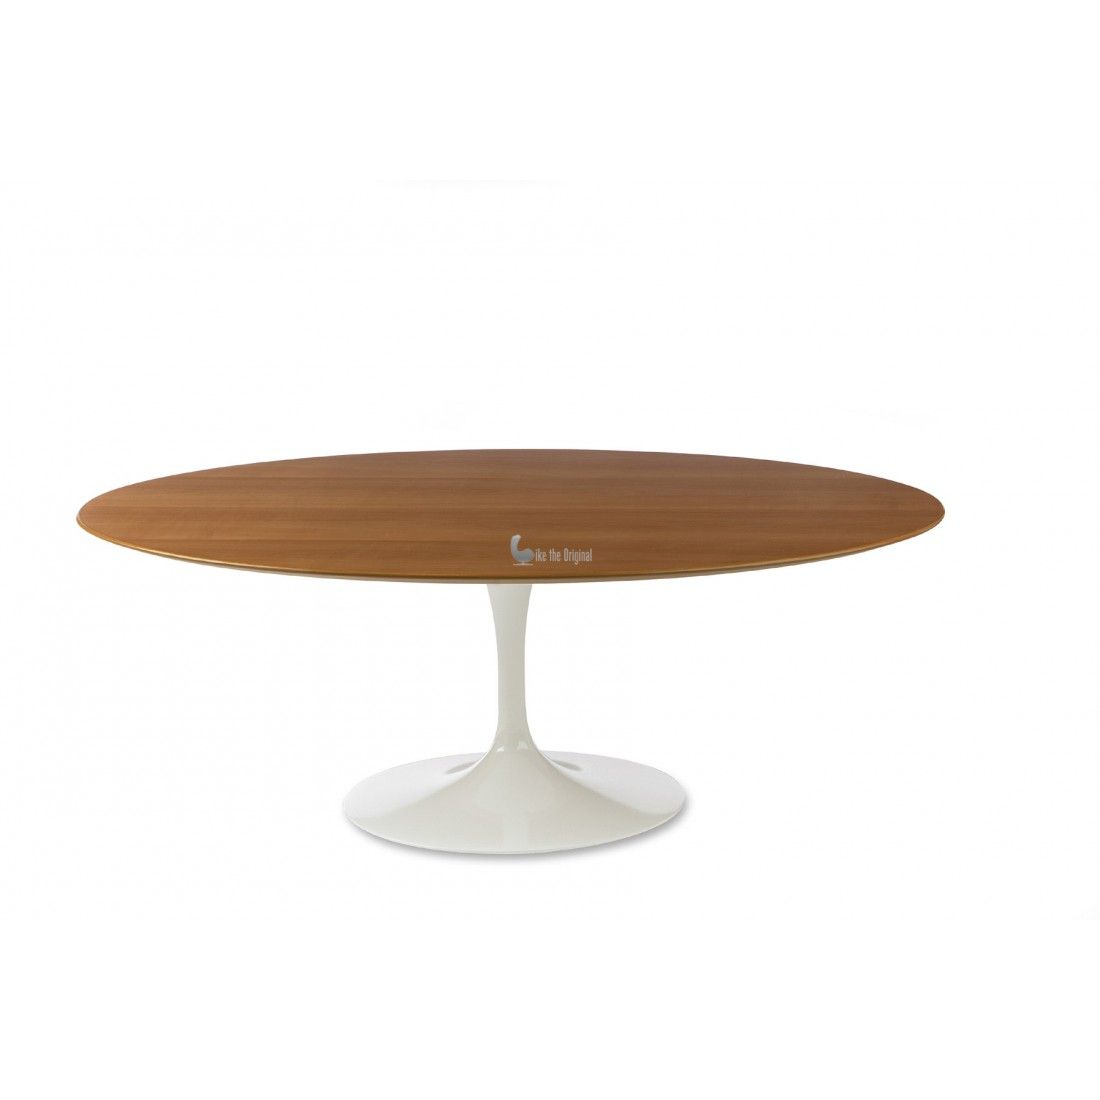 oval kitchen table Eero Saarinen Tulip Oval Dining Table Wood reproduction more choices of